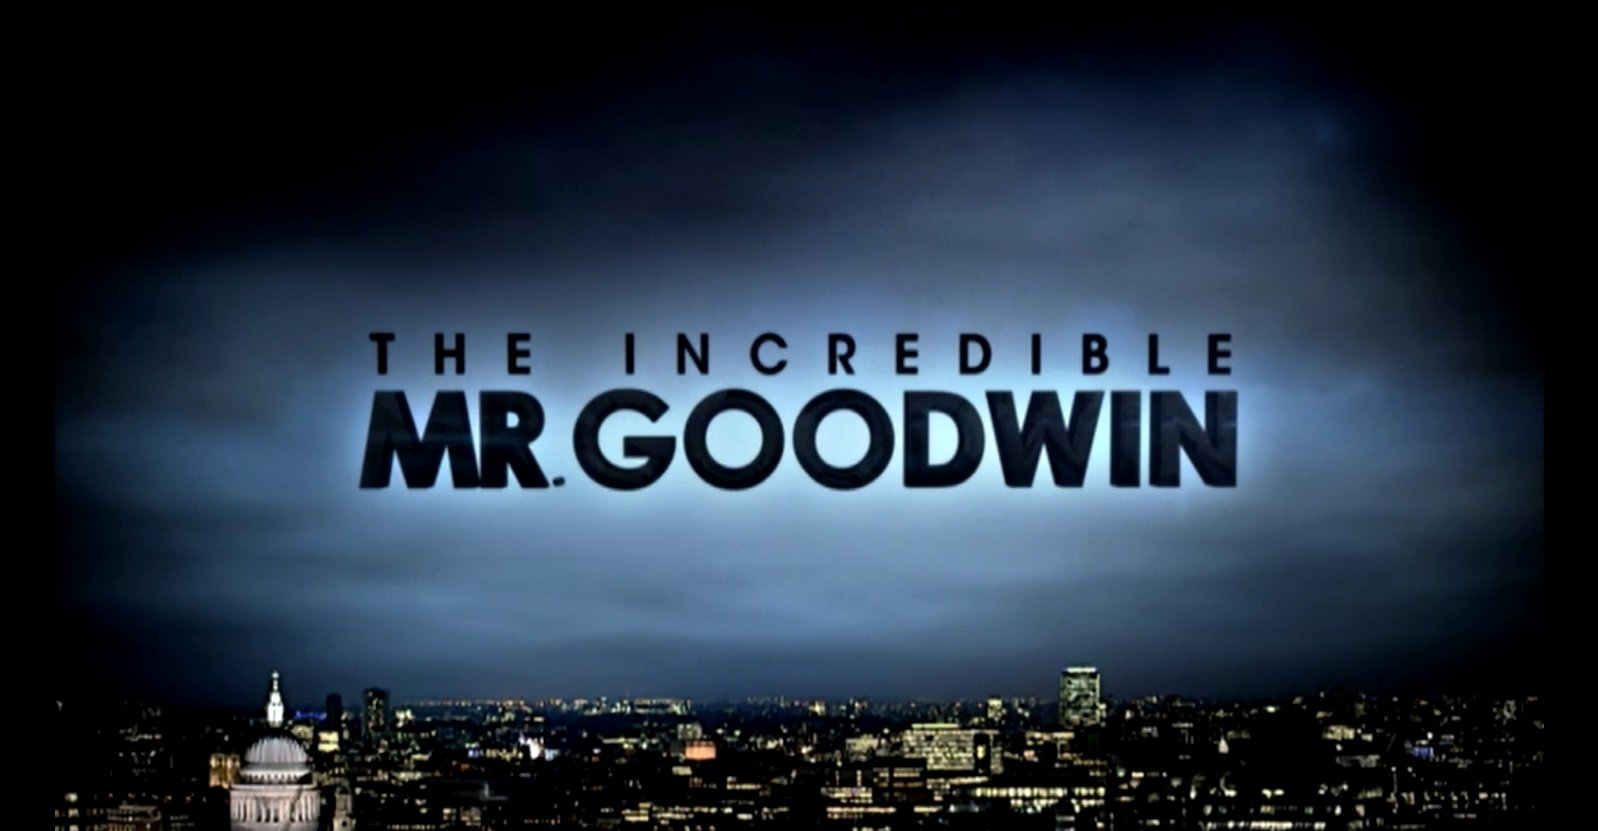 The Incredible Mr Goodwin - Crook Productions